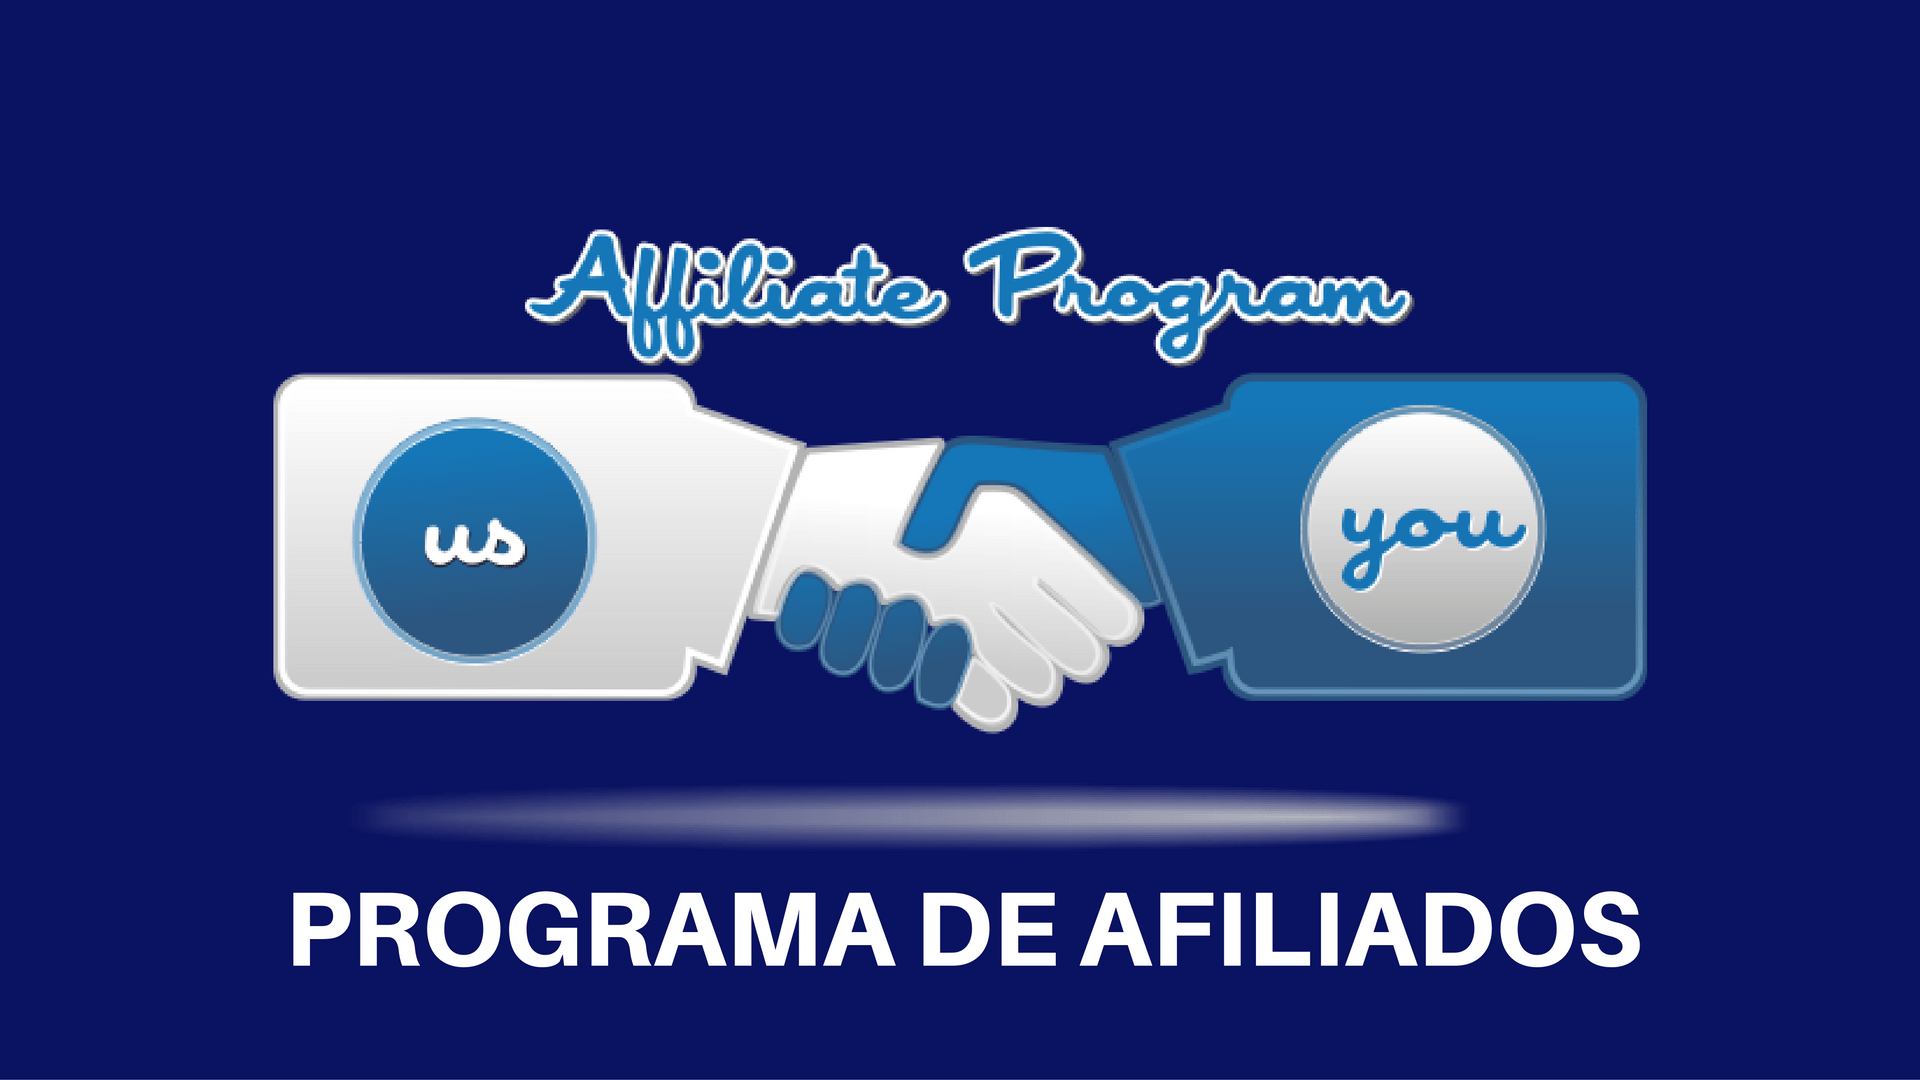 programa de afiliados ndash - photo #17